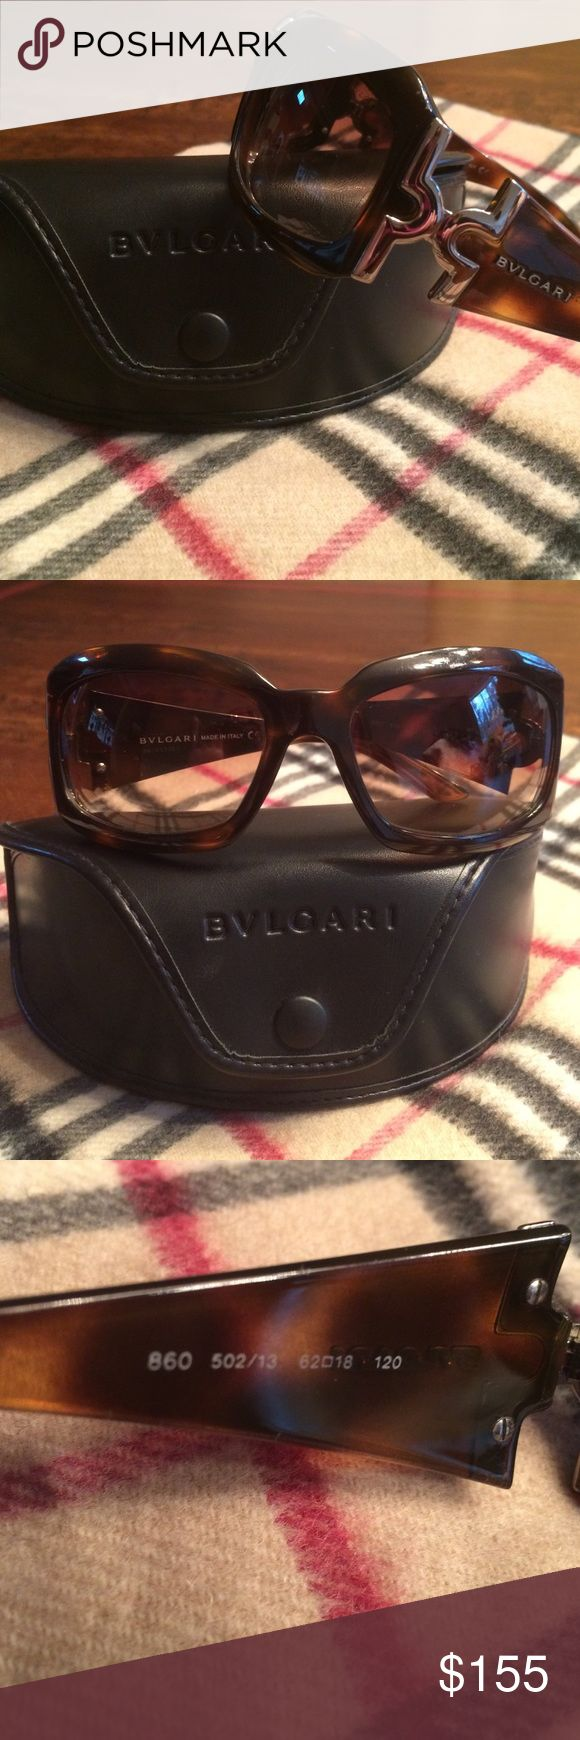 Bvlgari sunglasses 😎 Beautiful, stylish & authentic Bvlgari sunglasses 😎!! Gorgeous brown tortoise color w/ silver tone details.  Made in Italy 🇮🇹 (see code # in pic 3).  Comes w/ Bvlgari case. Bvlgari Accessories Sunglasses